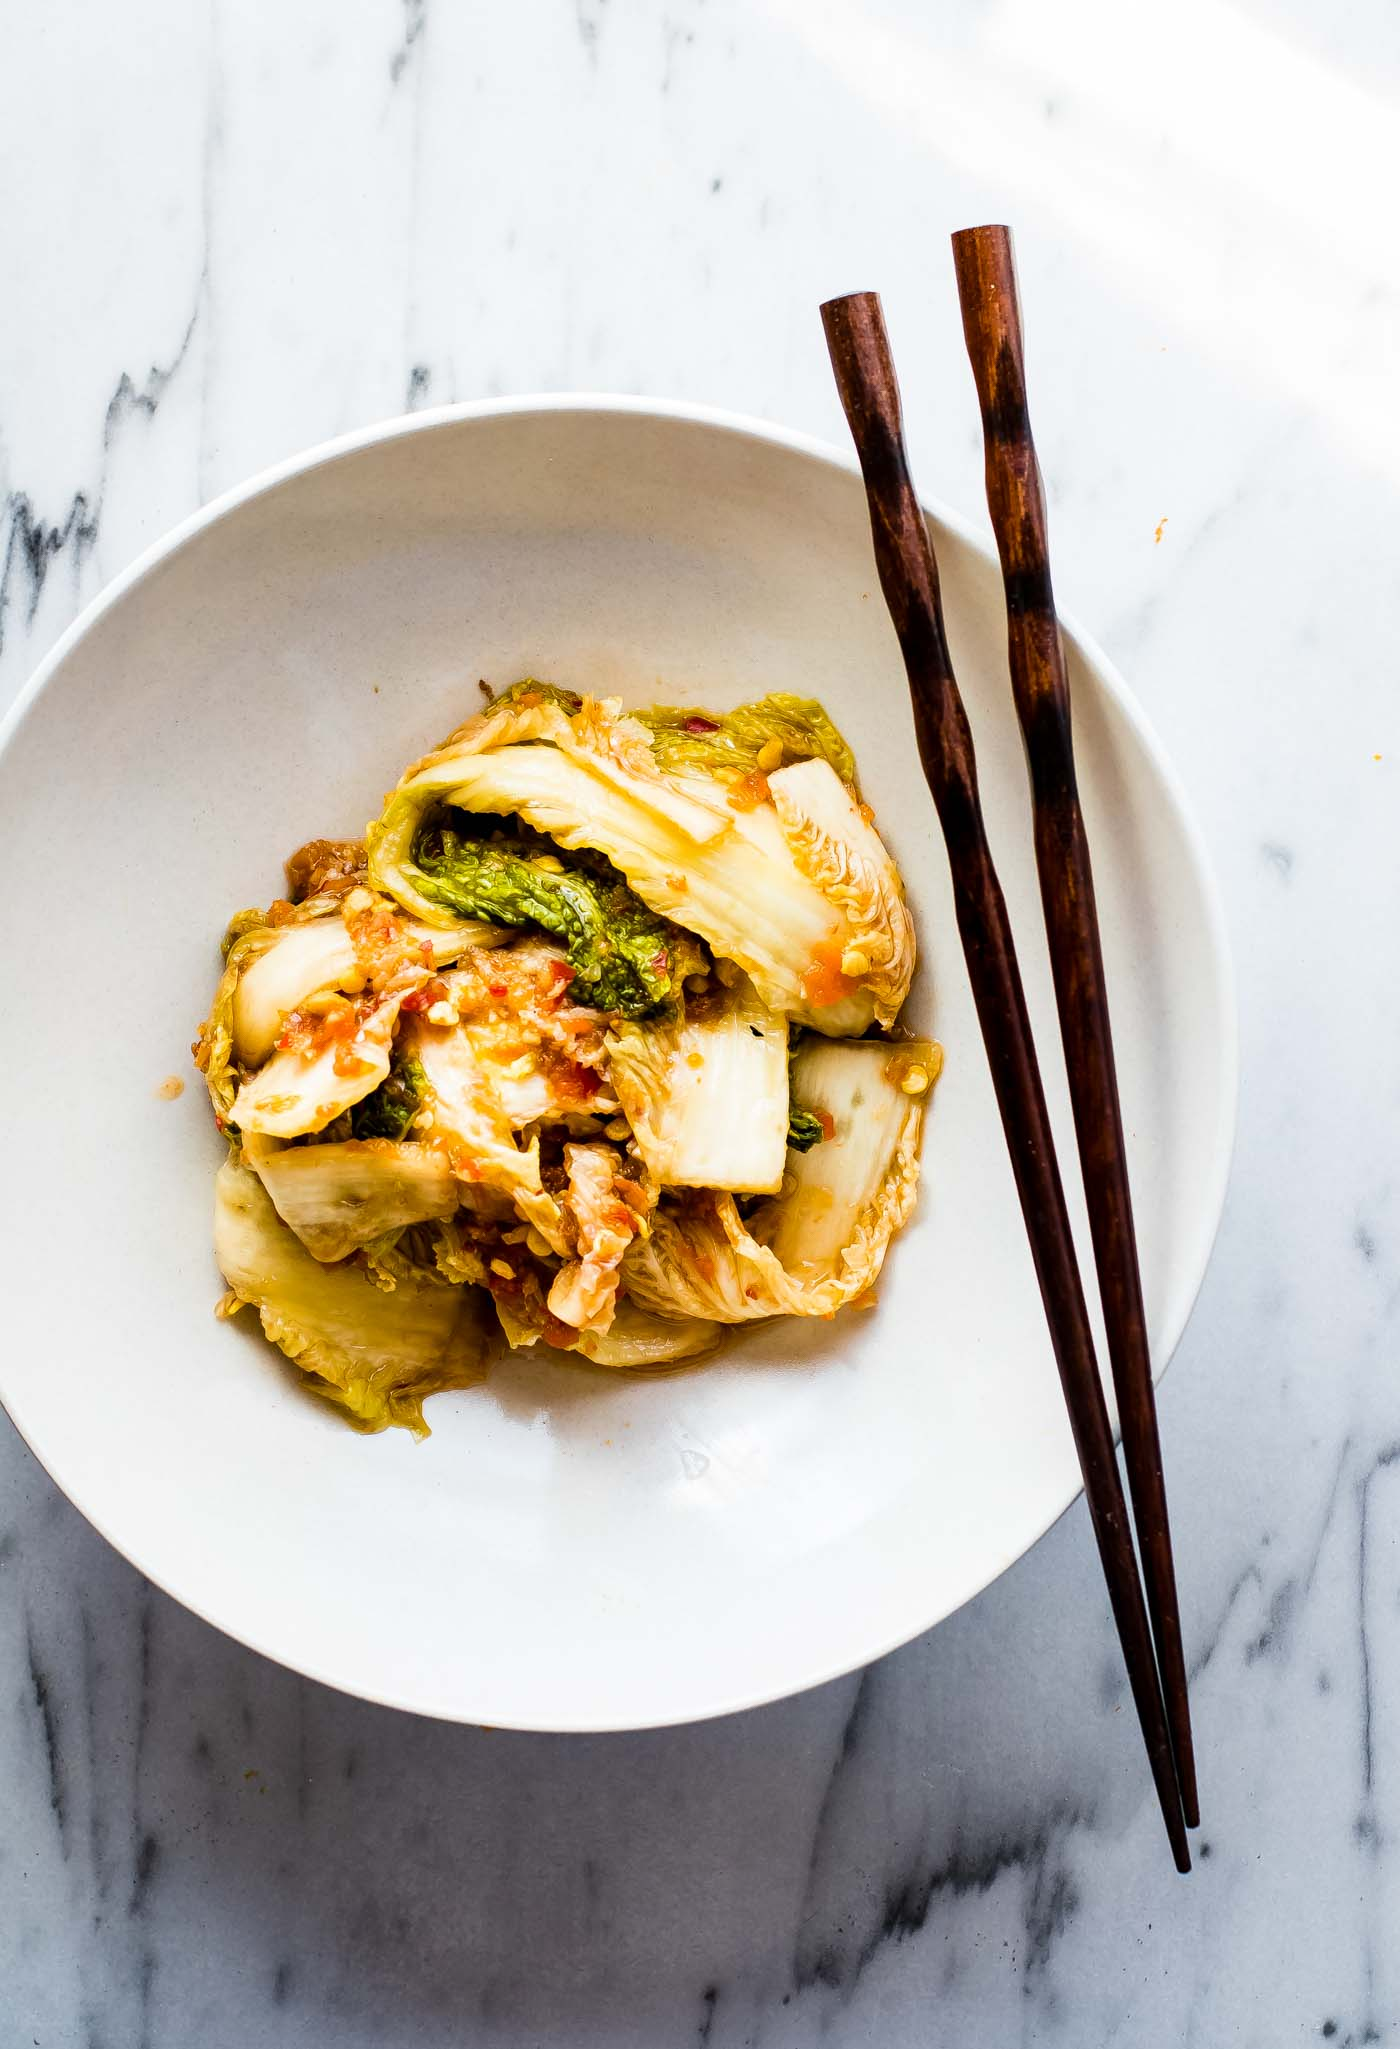 Asian Southwest Fusion EASY Kimchi Recipe. A spicy, tangy, and oh so Easy kimchi recipe! This paleo Asian Southwest Fusion style kimchi takes 10 minutes to make. The hardest part is waiting for it to ferment.. Yep, a healthy side or topping to any dish. Vegan Friendly.